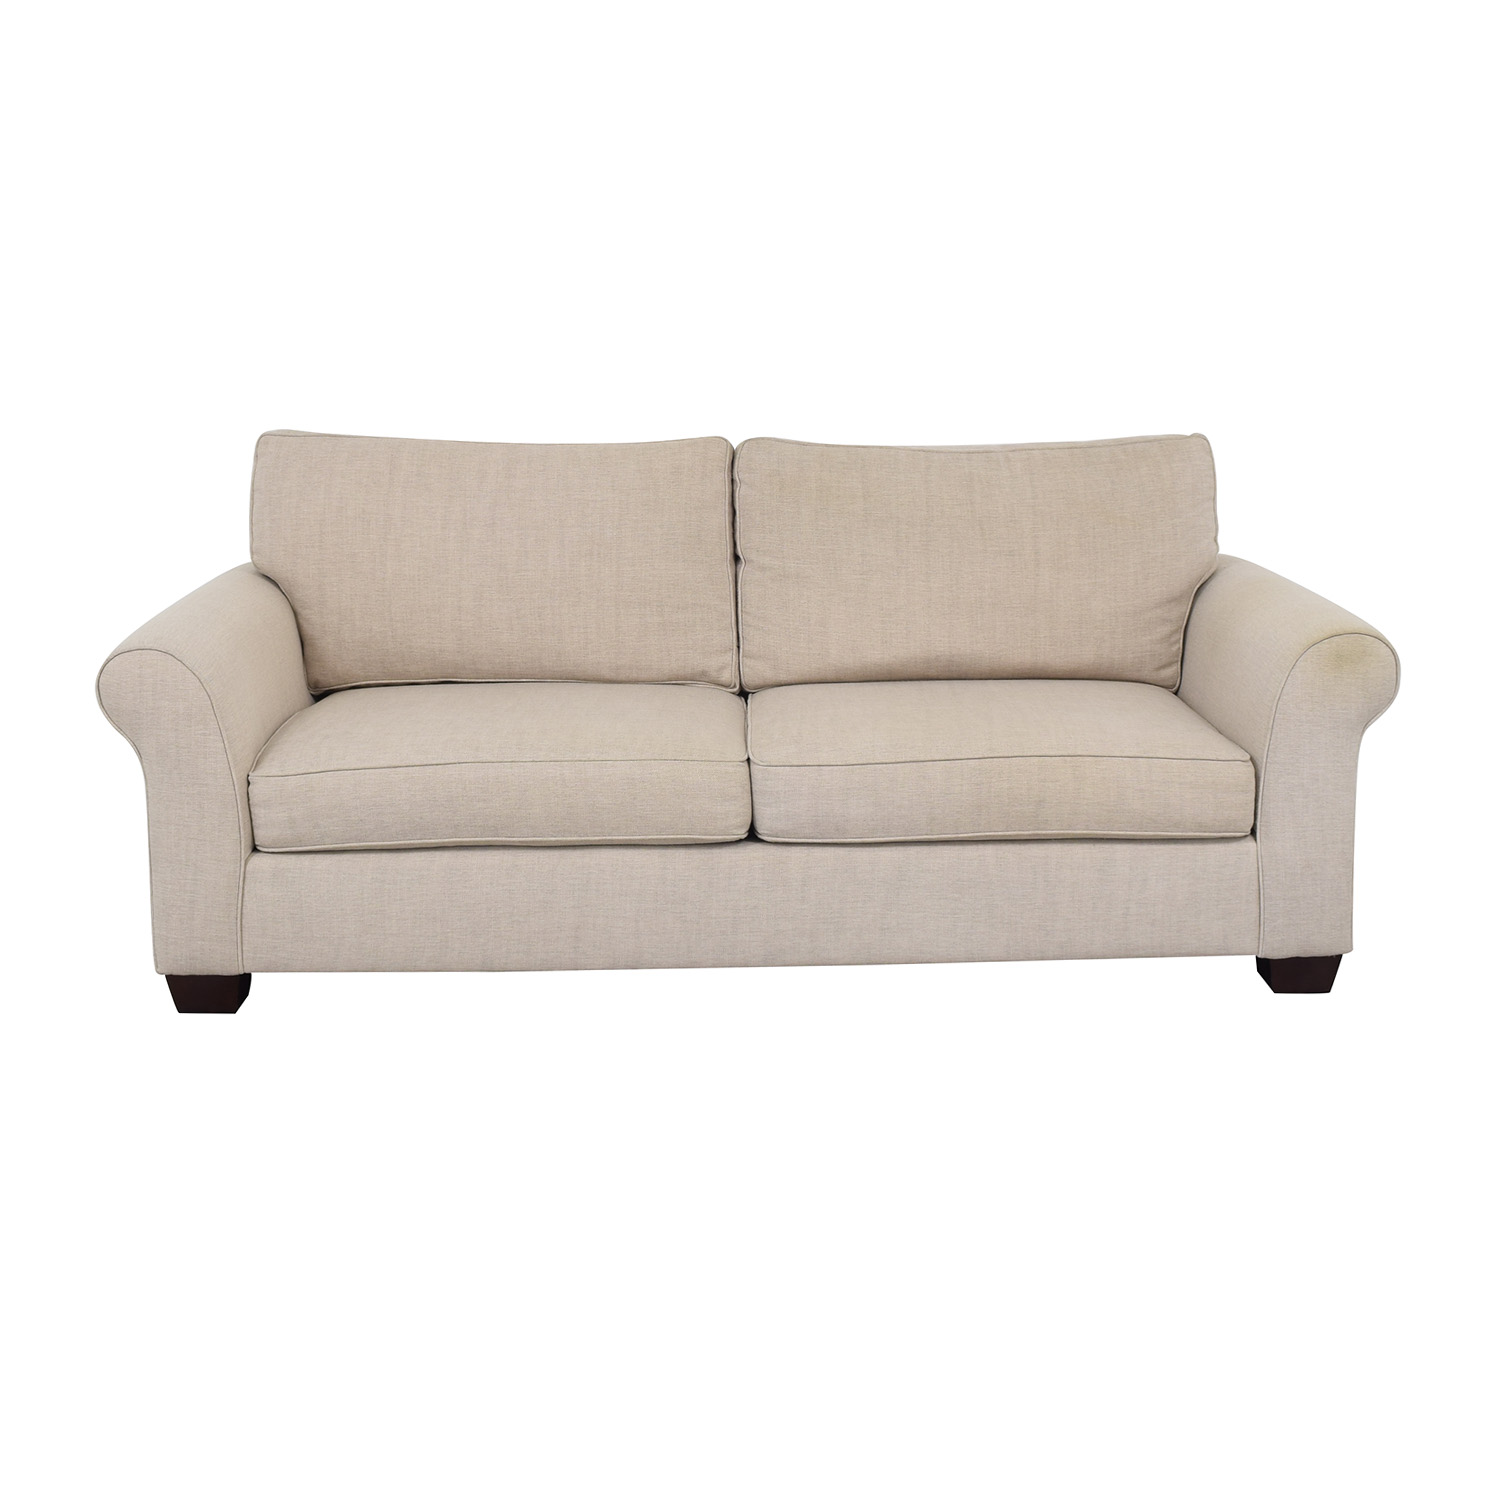 Pottery Barn Comfort Roll Arm Upholstered Sofa / Loveseats